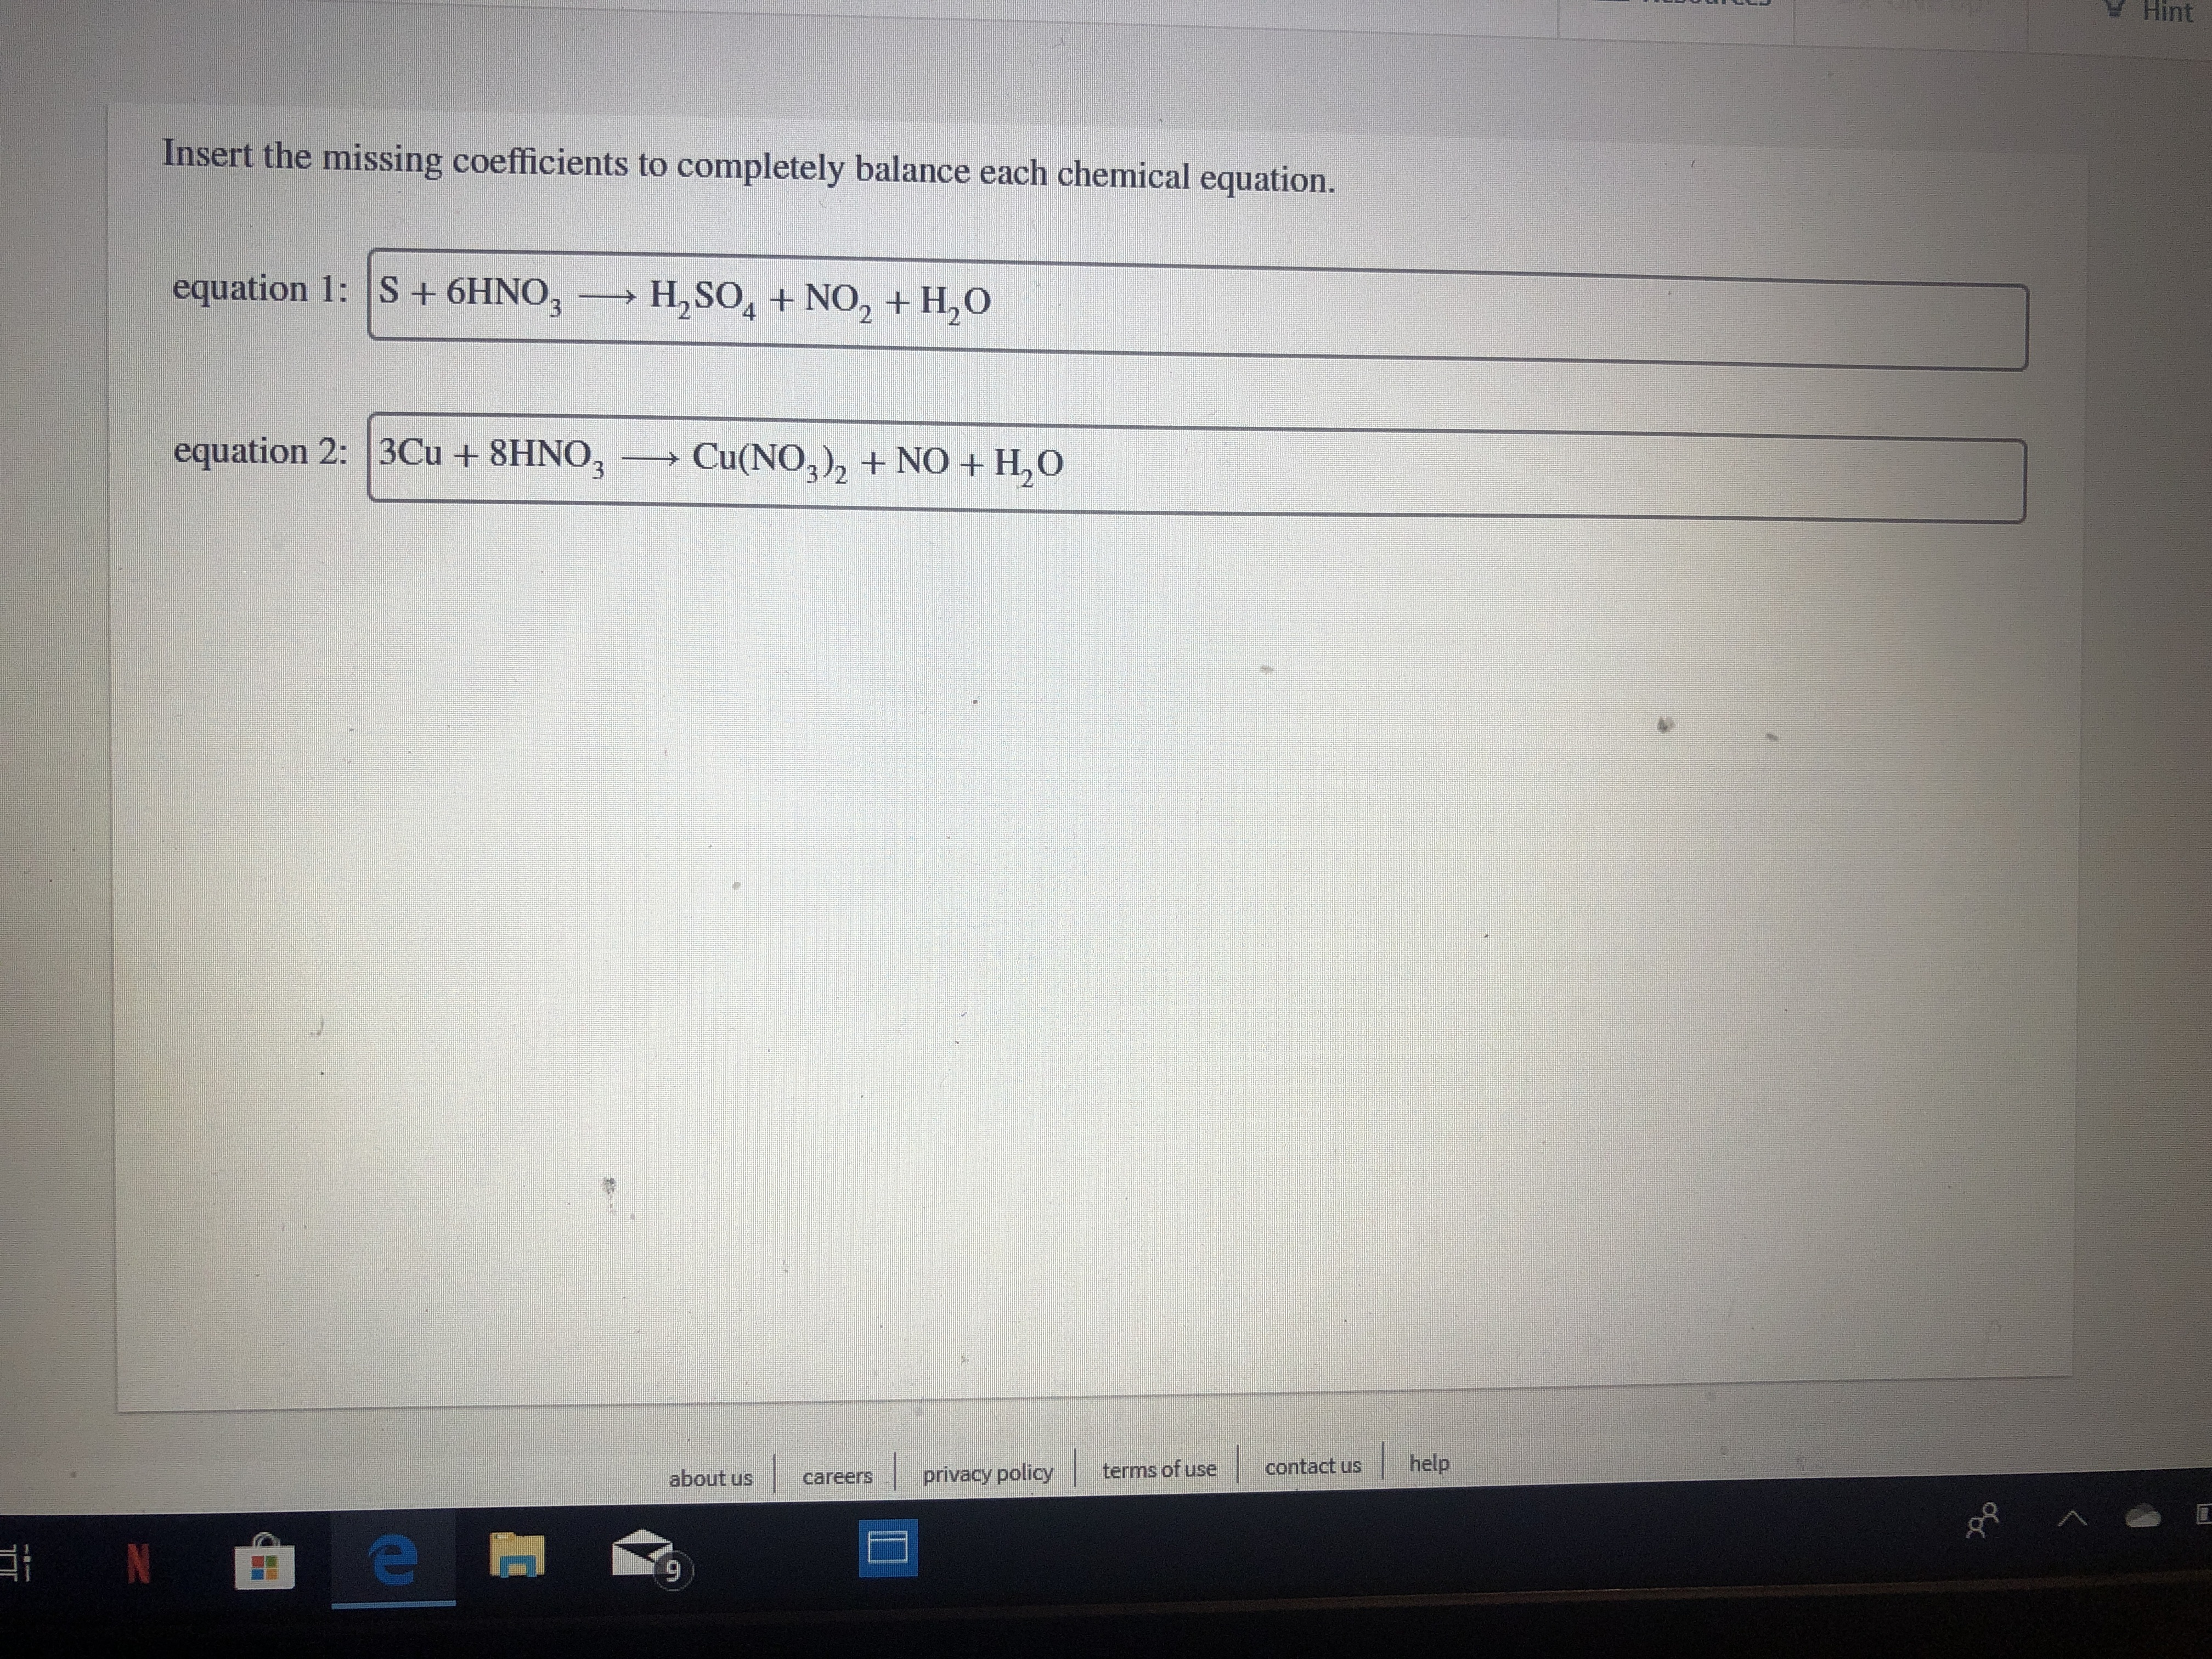 Hint Insert the missing coefficients to completely balance each chemical equation. equation 1: S +6HNO3 H2SO4+ NO2+H,O equation 2: 3Cu +8HNO Cu(NO3)2 NO + H2O 3 help contact us terms of use privacy policy about us careers 9 N